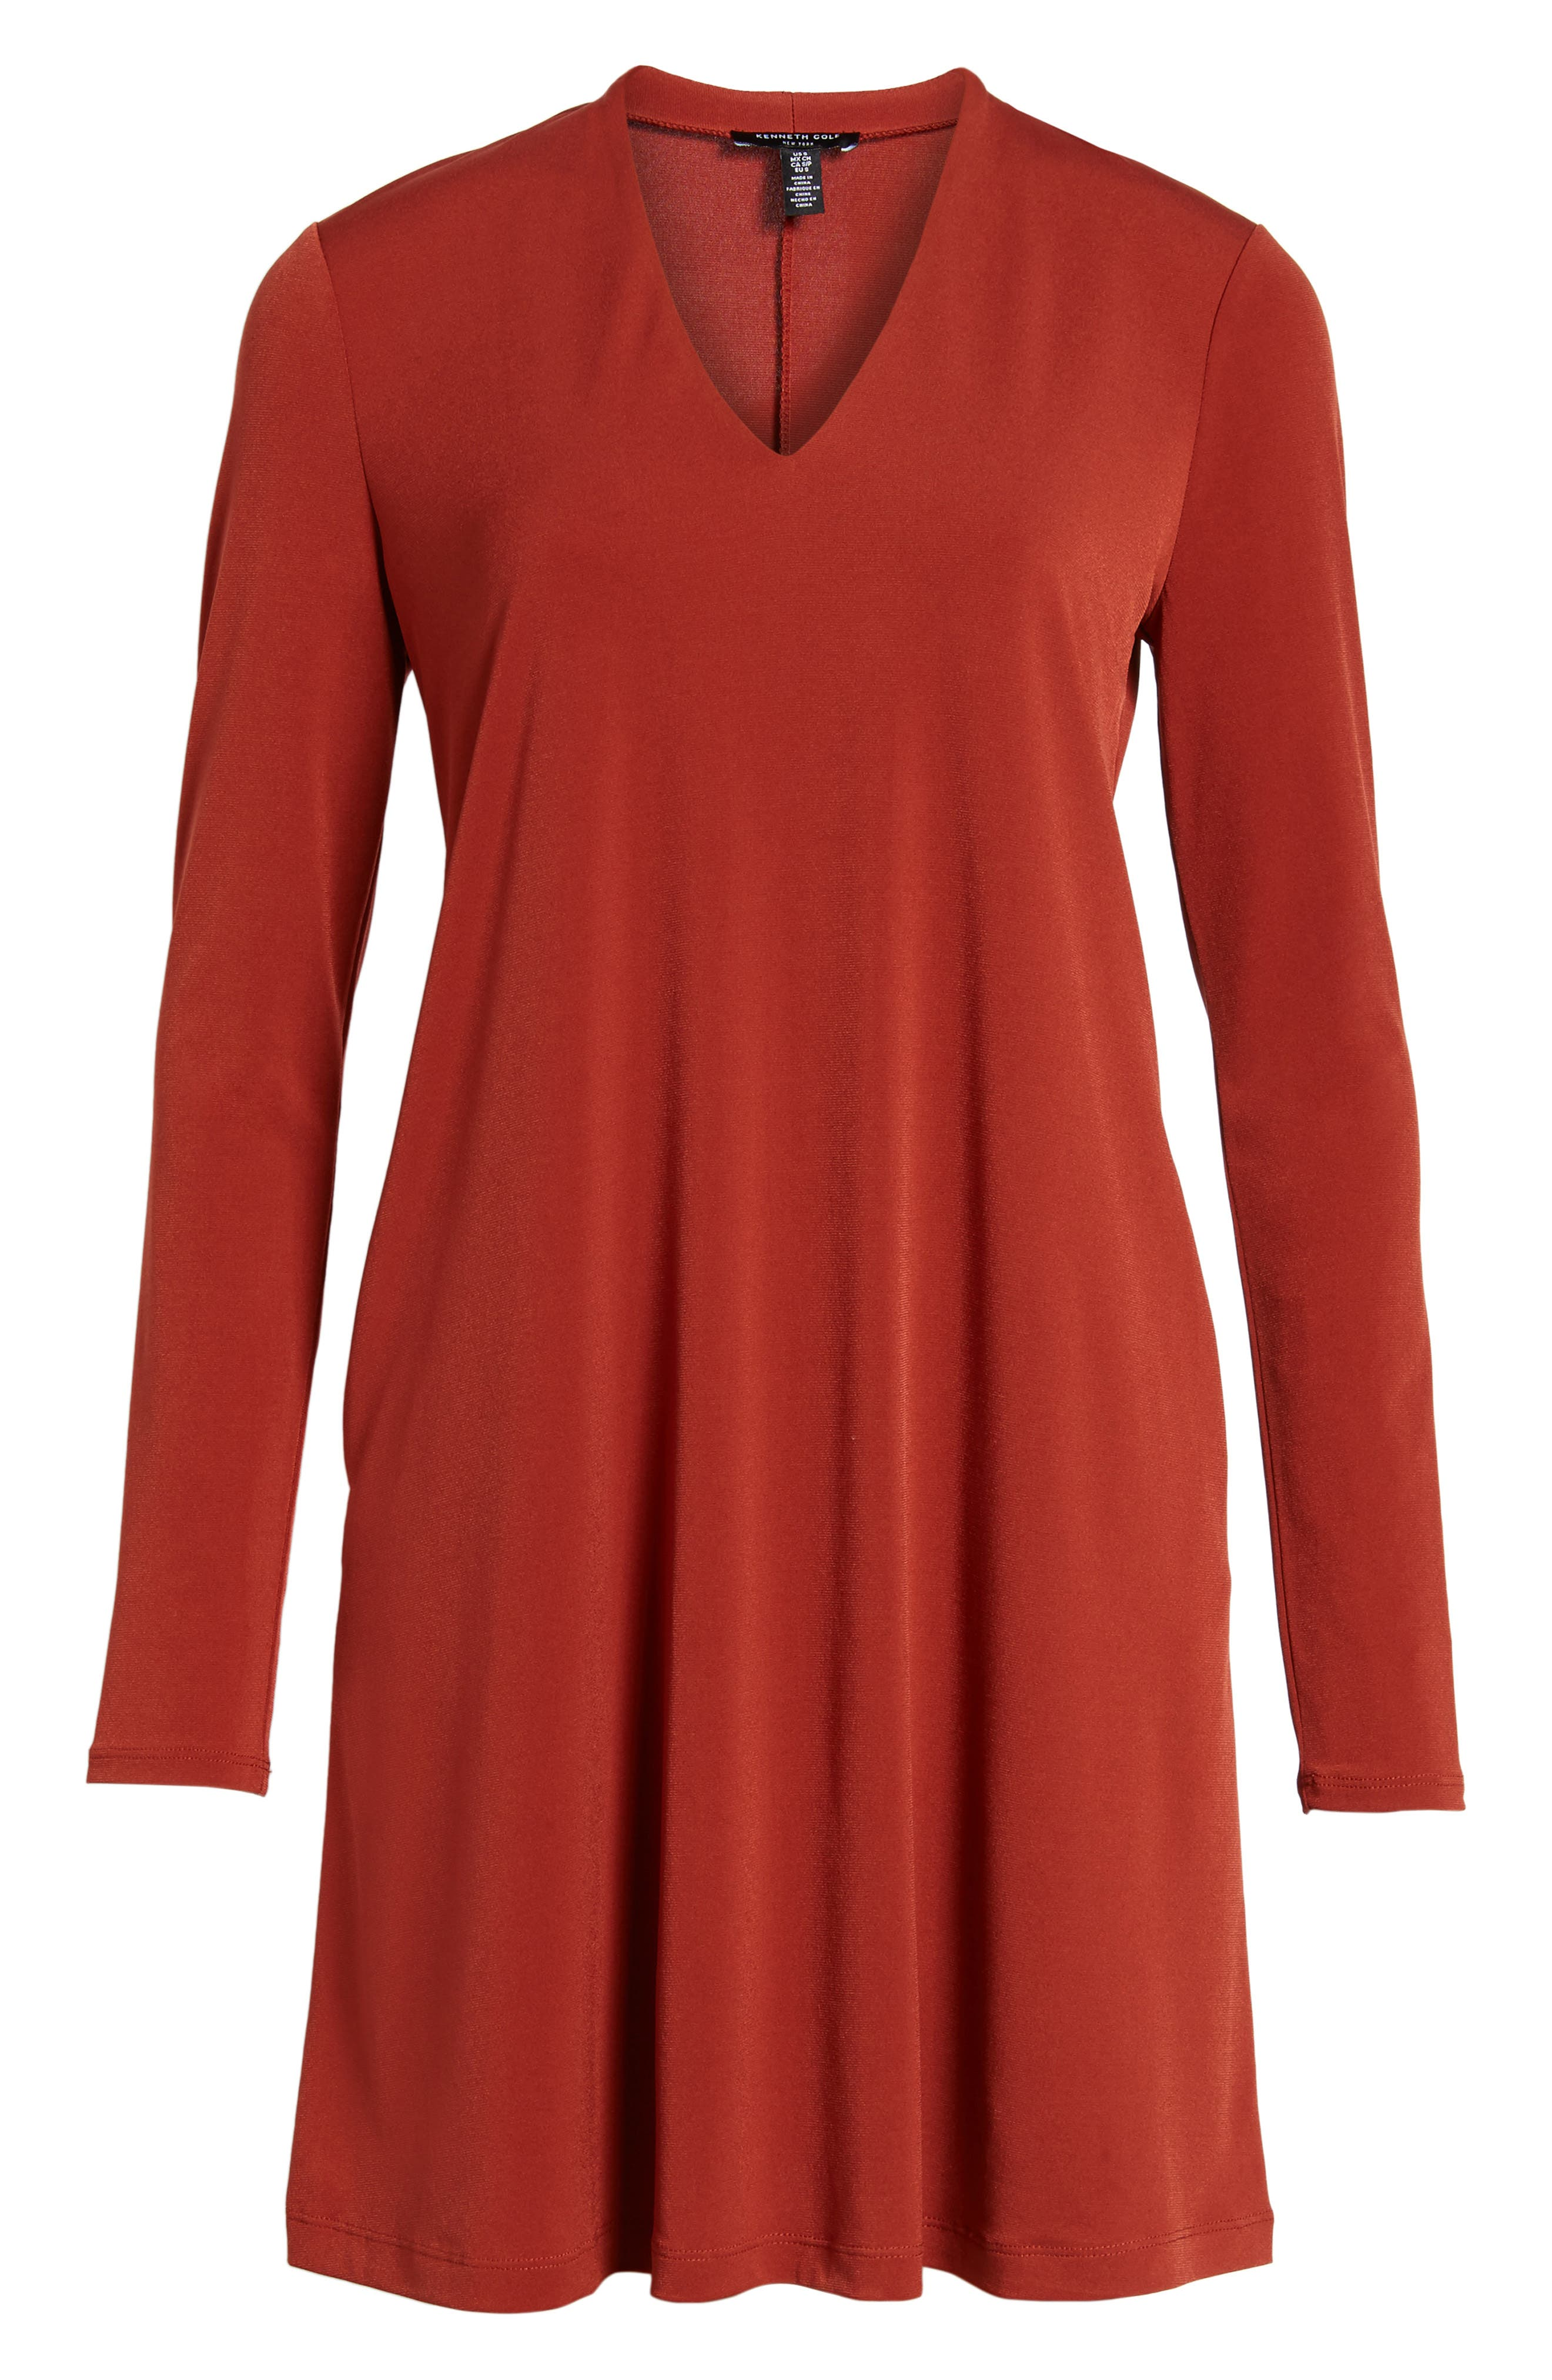 V-Neck A-Line Dress,                             Alternate thumbnail 6, color,                             Red Clay